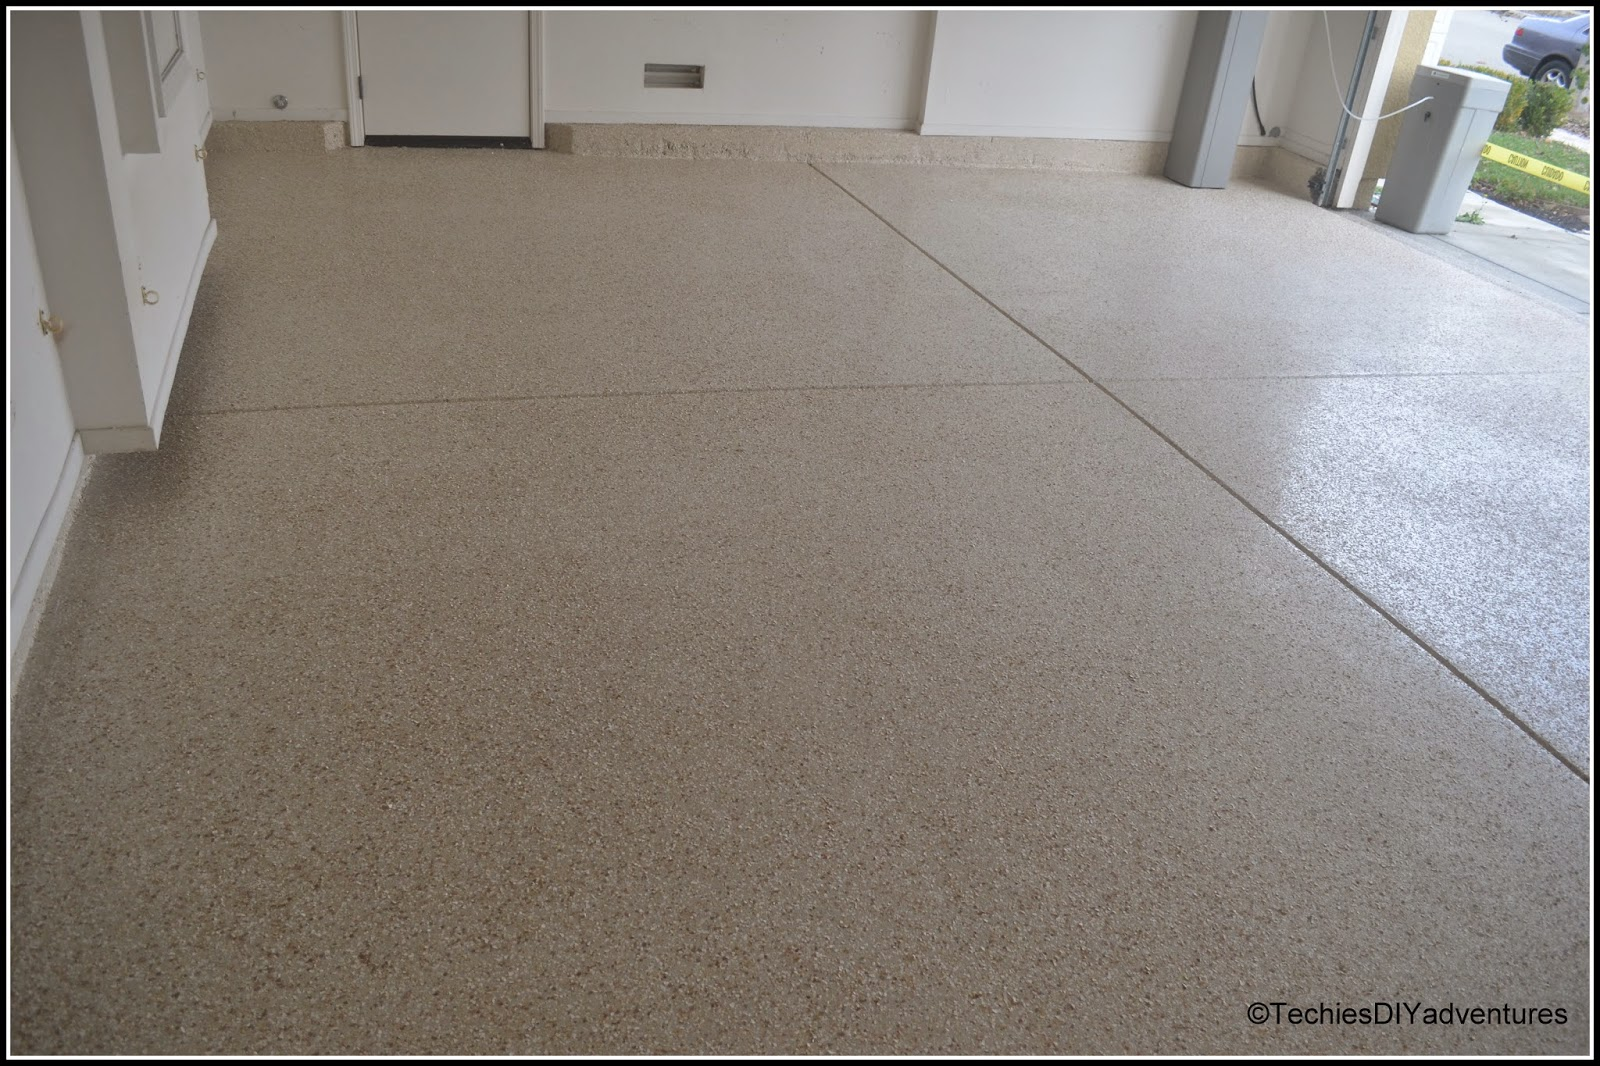 Epoxy Paint Chips : Garage floor gets a makeover with epoxy techie s diy